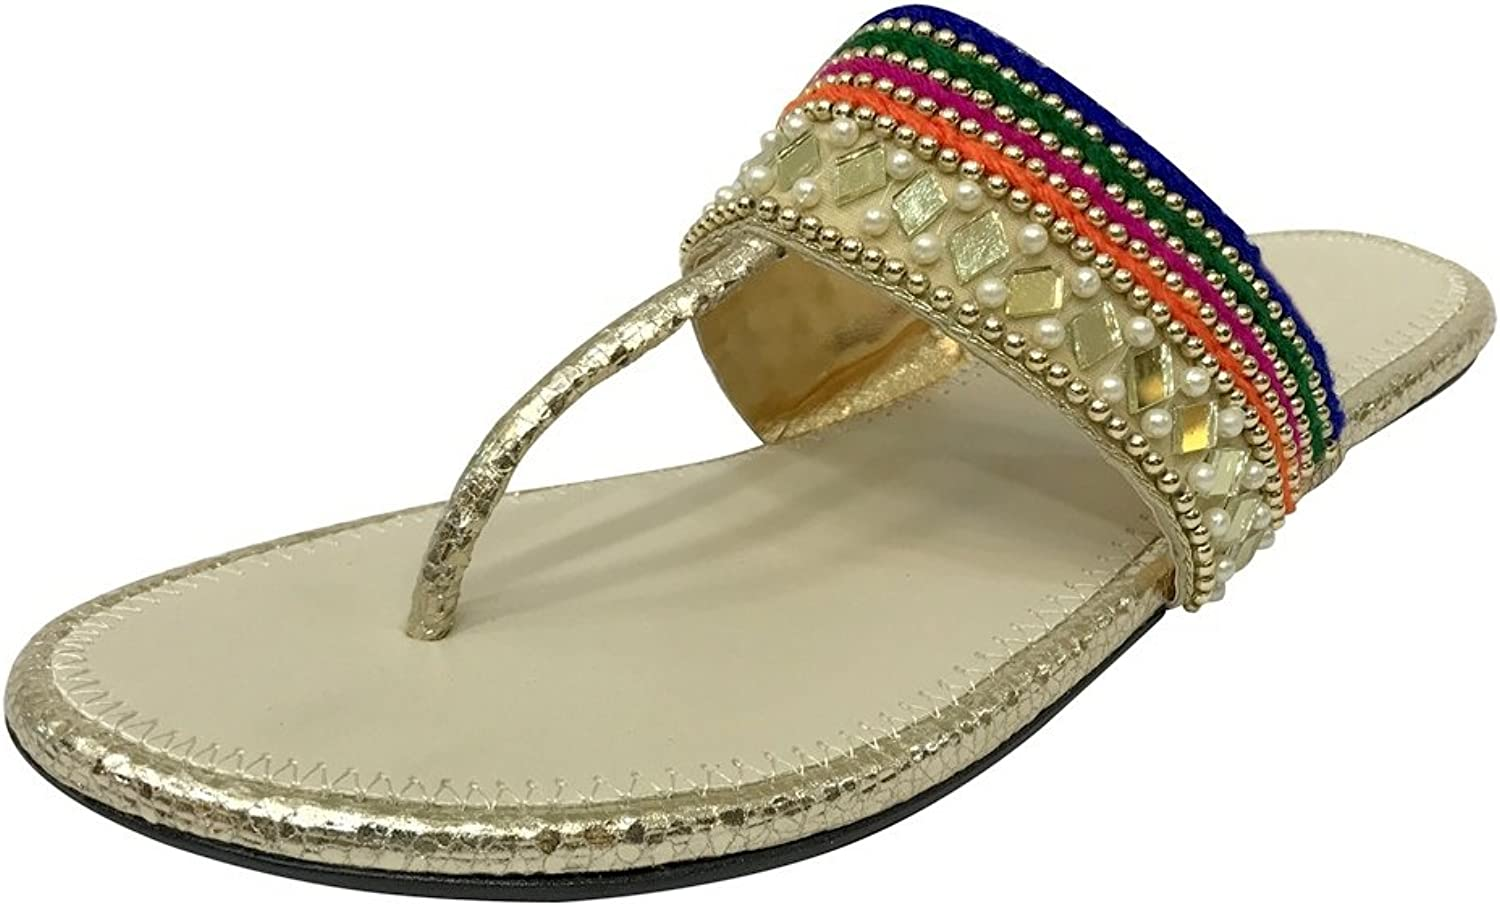 Step n Style Flat Beaded Sandals Flat Sandals Flat shoes Indian Sandals Khussa Jutti